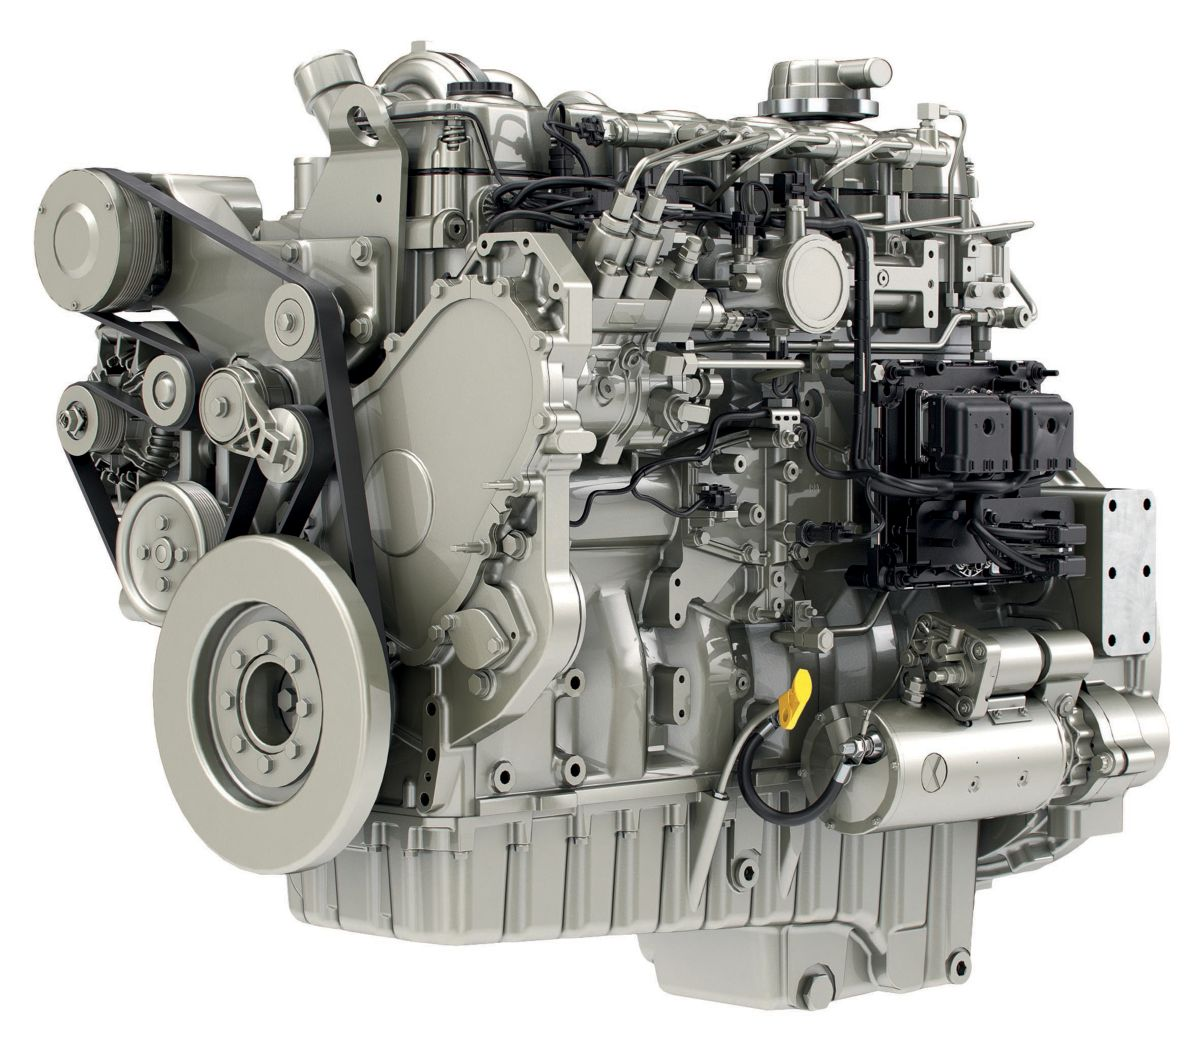 Expanded Perkins 9-18 litre engine range delivers new opportunities for construction equipment manufacturers